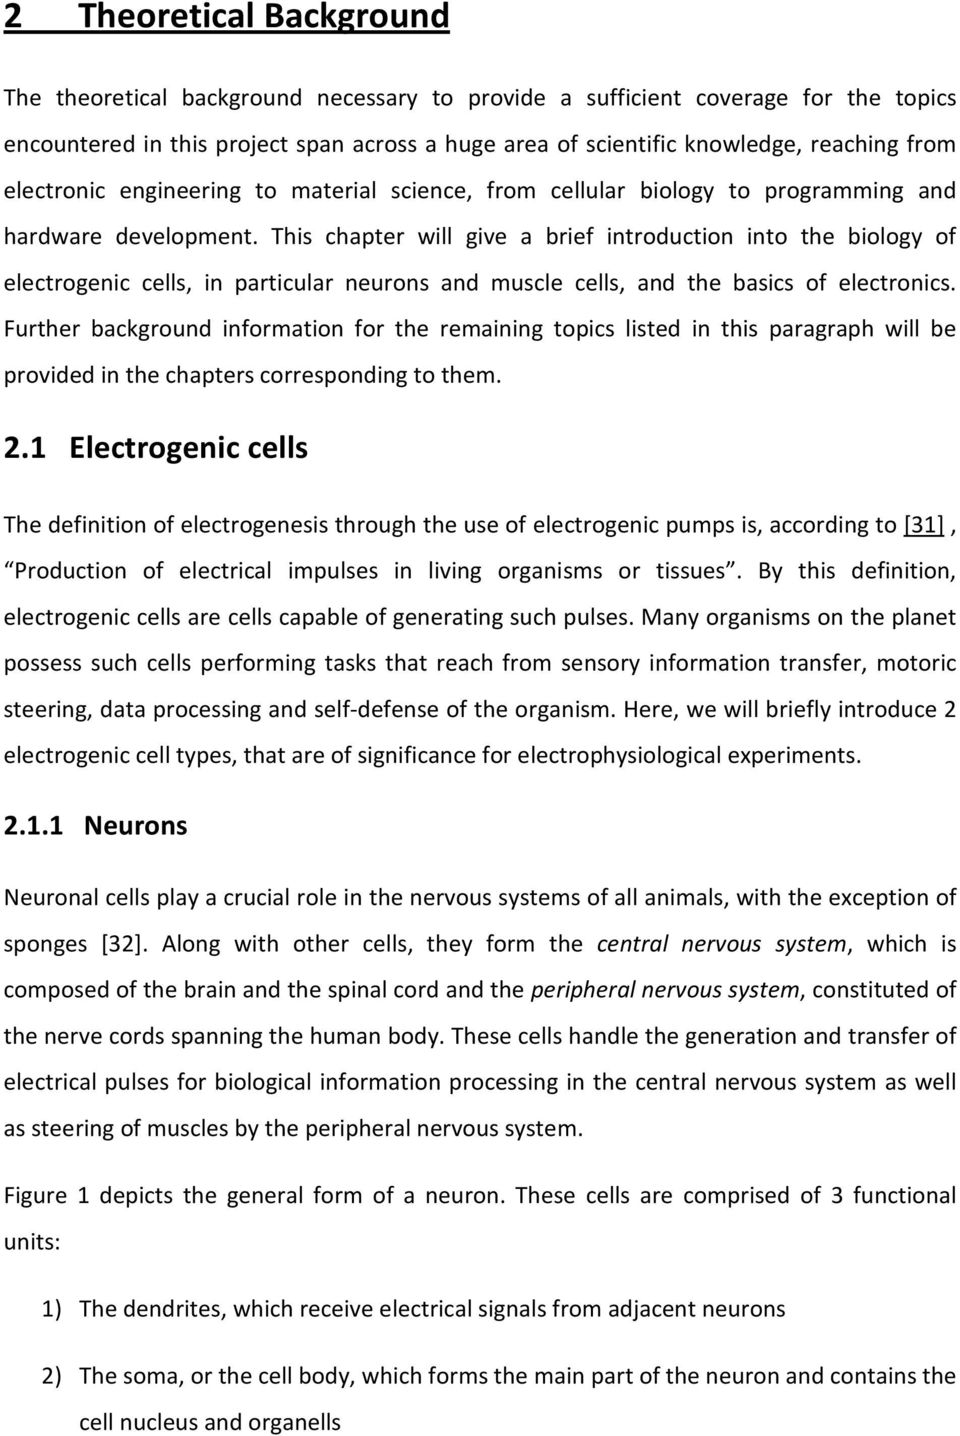 This chapter will give a brief introduction into the biology of electrogenic cells, in particular neurons and muscle cells, and the basics of electronics.